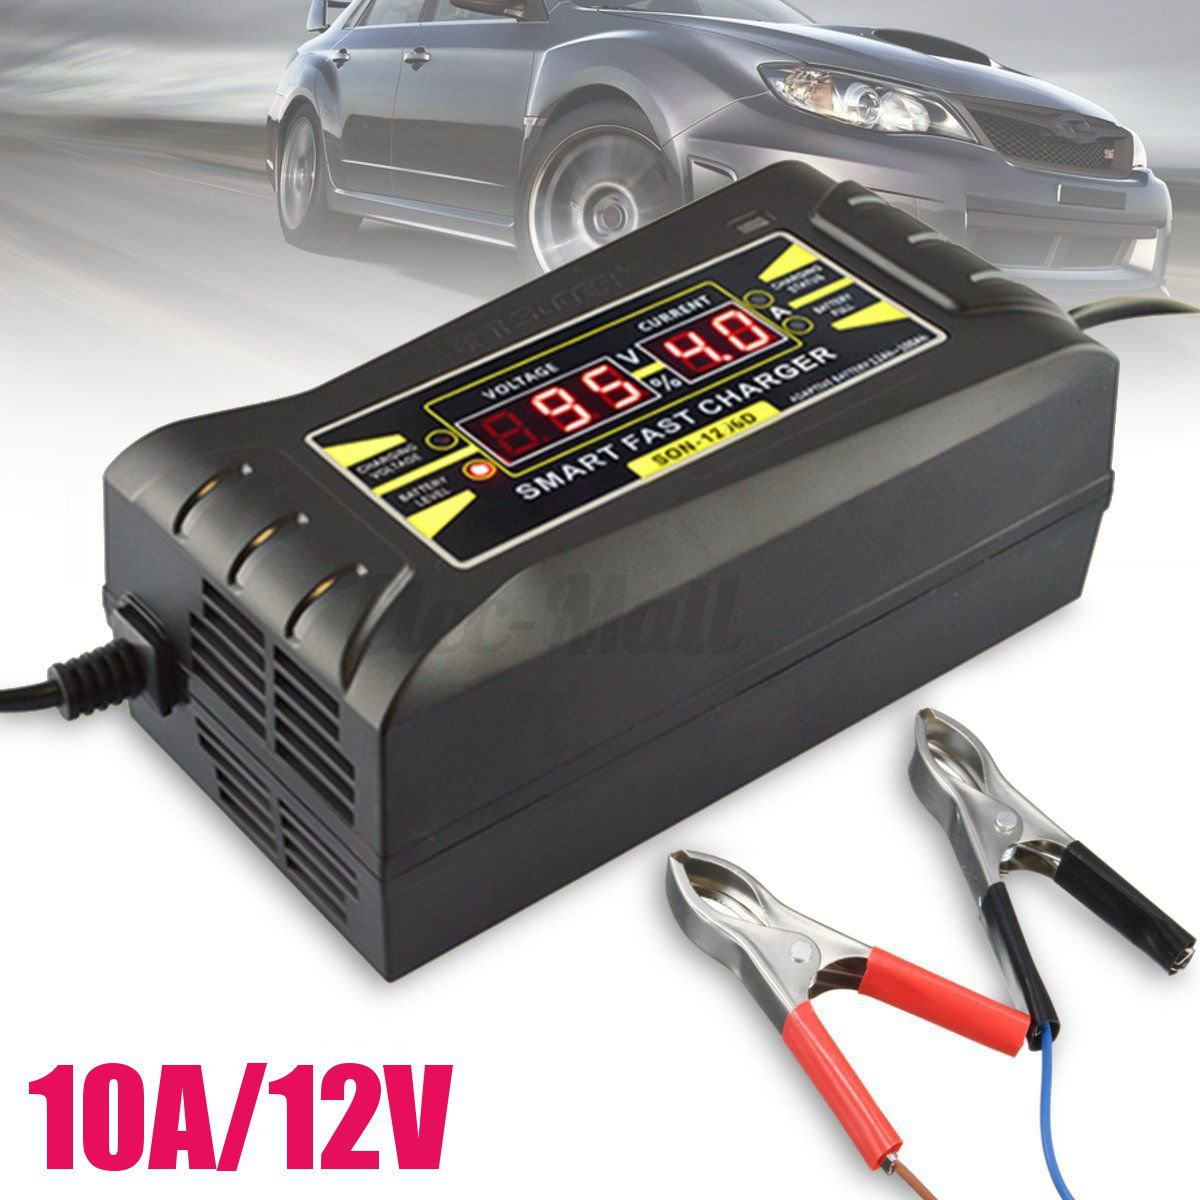 12v 5a 6a 10a smart car motorcycle pwm battery charger. Black Bedroom Furniture Sets. Home Design Ideas